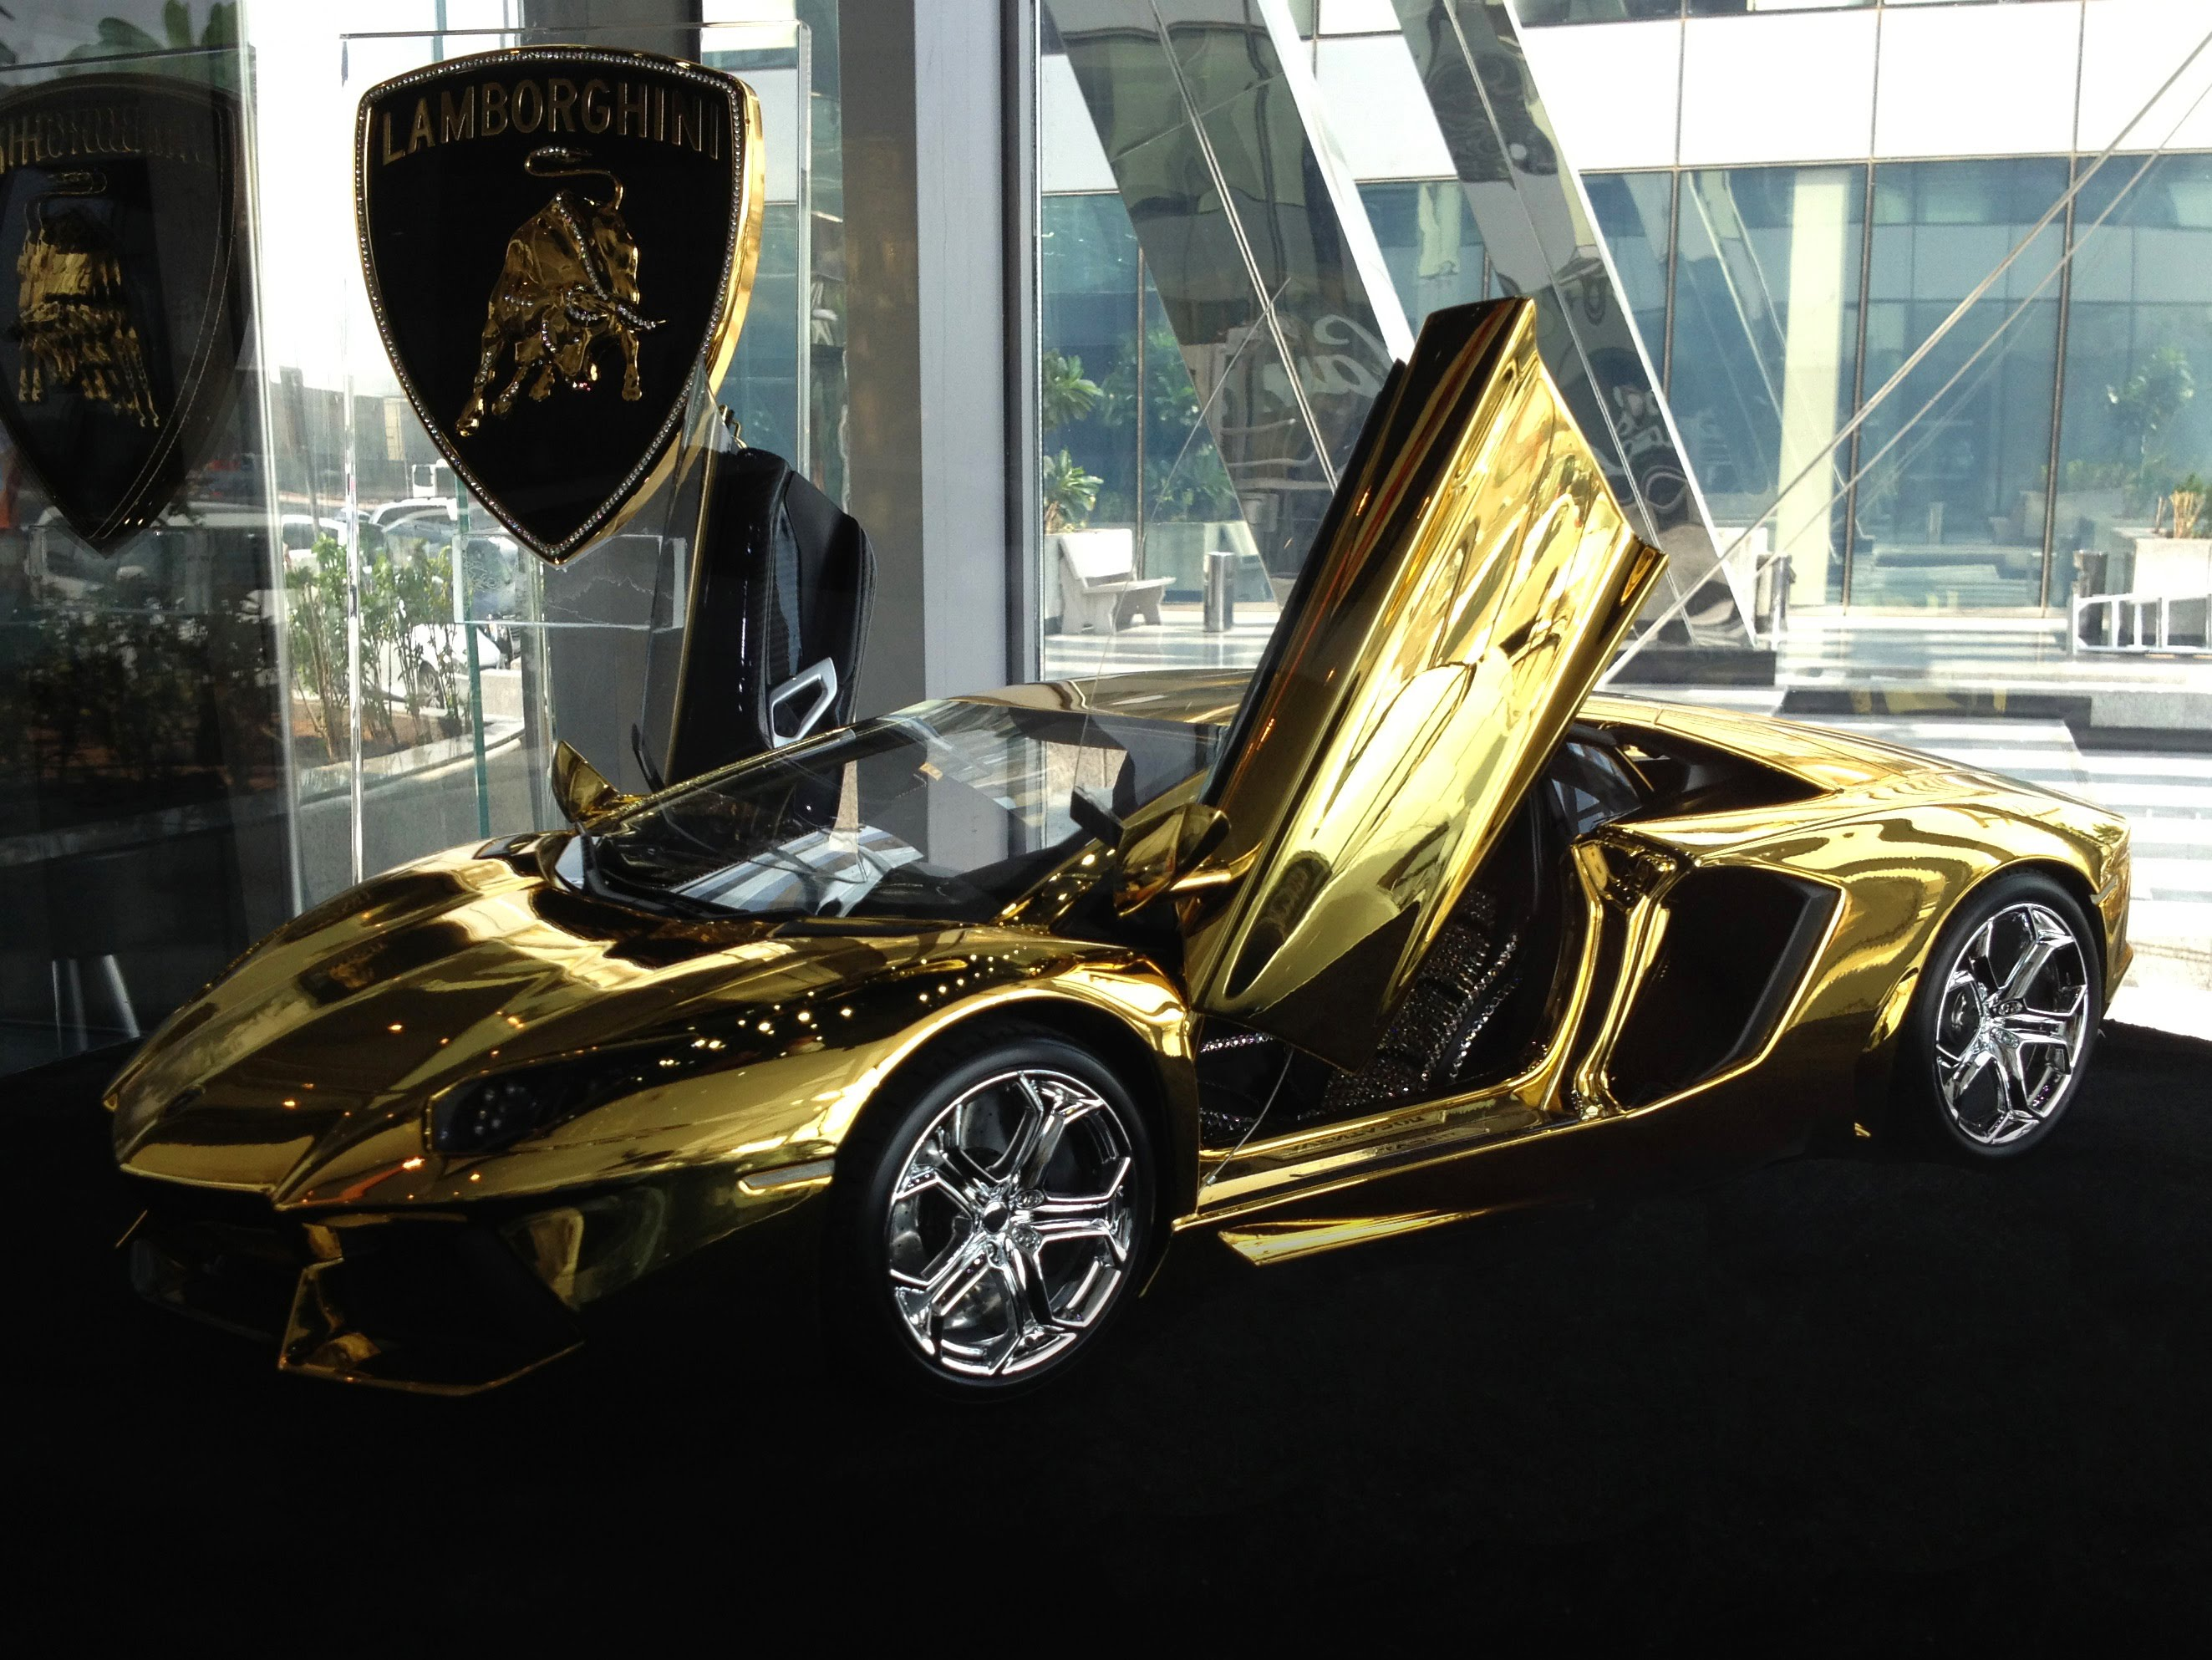 lamborghini veneno chrome with Autos Deportivos Mas Caros on Cool Gold Cars Wallpapers additionally 123075002296407594 further Lamborghini Veneno Roadster Presented On Aircraft Carrier Nave Cavour also January Is Ugly Car Month 10 Of The Ugliest Cars Ever together with Autos Deportivos Mas Caros.